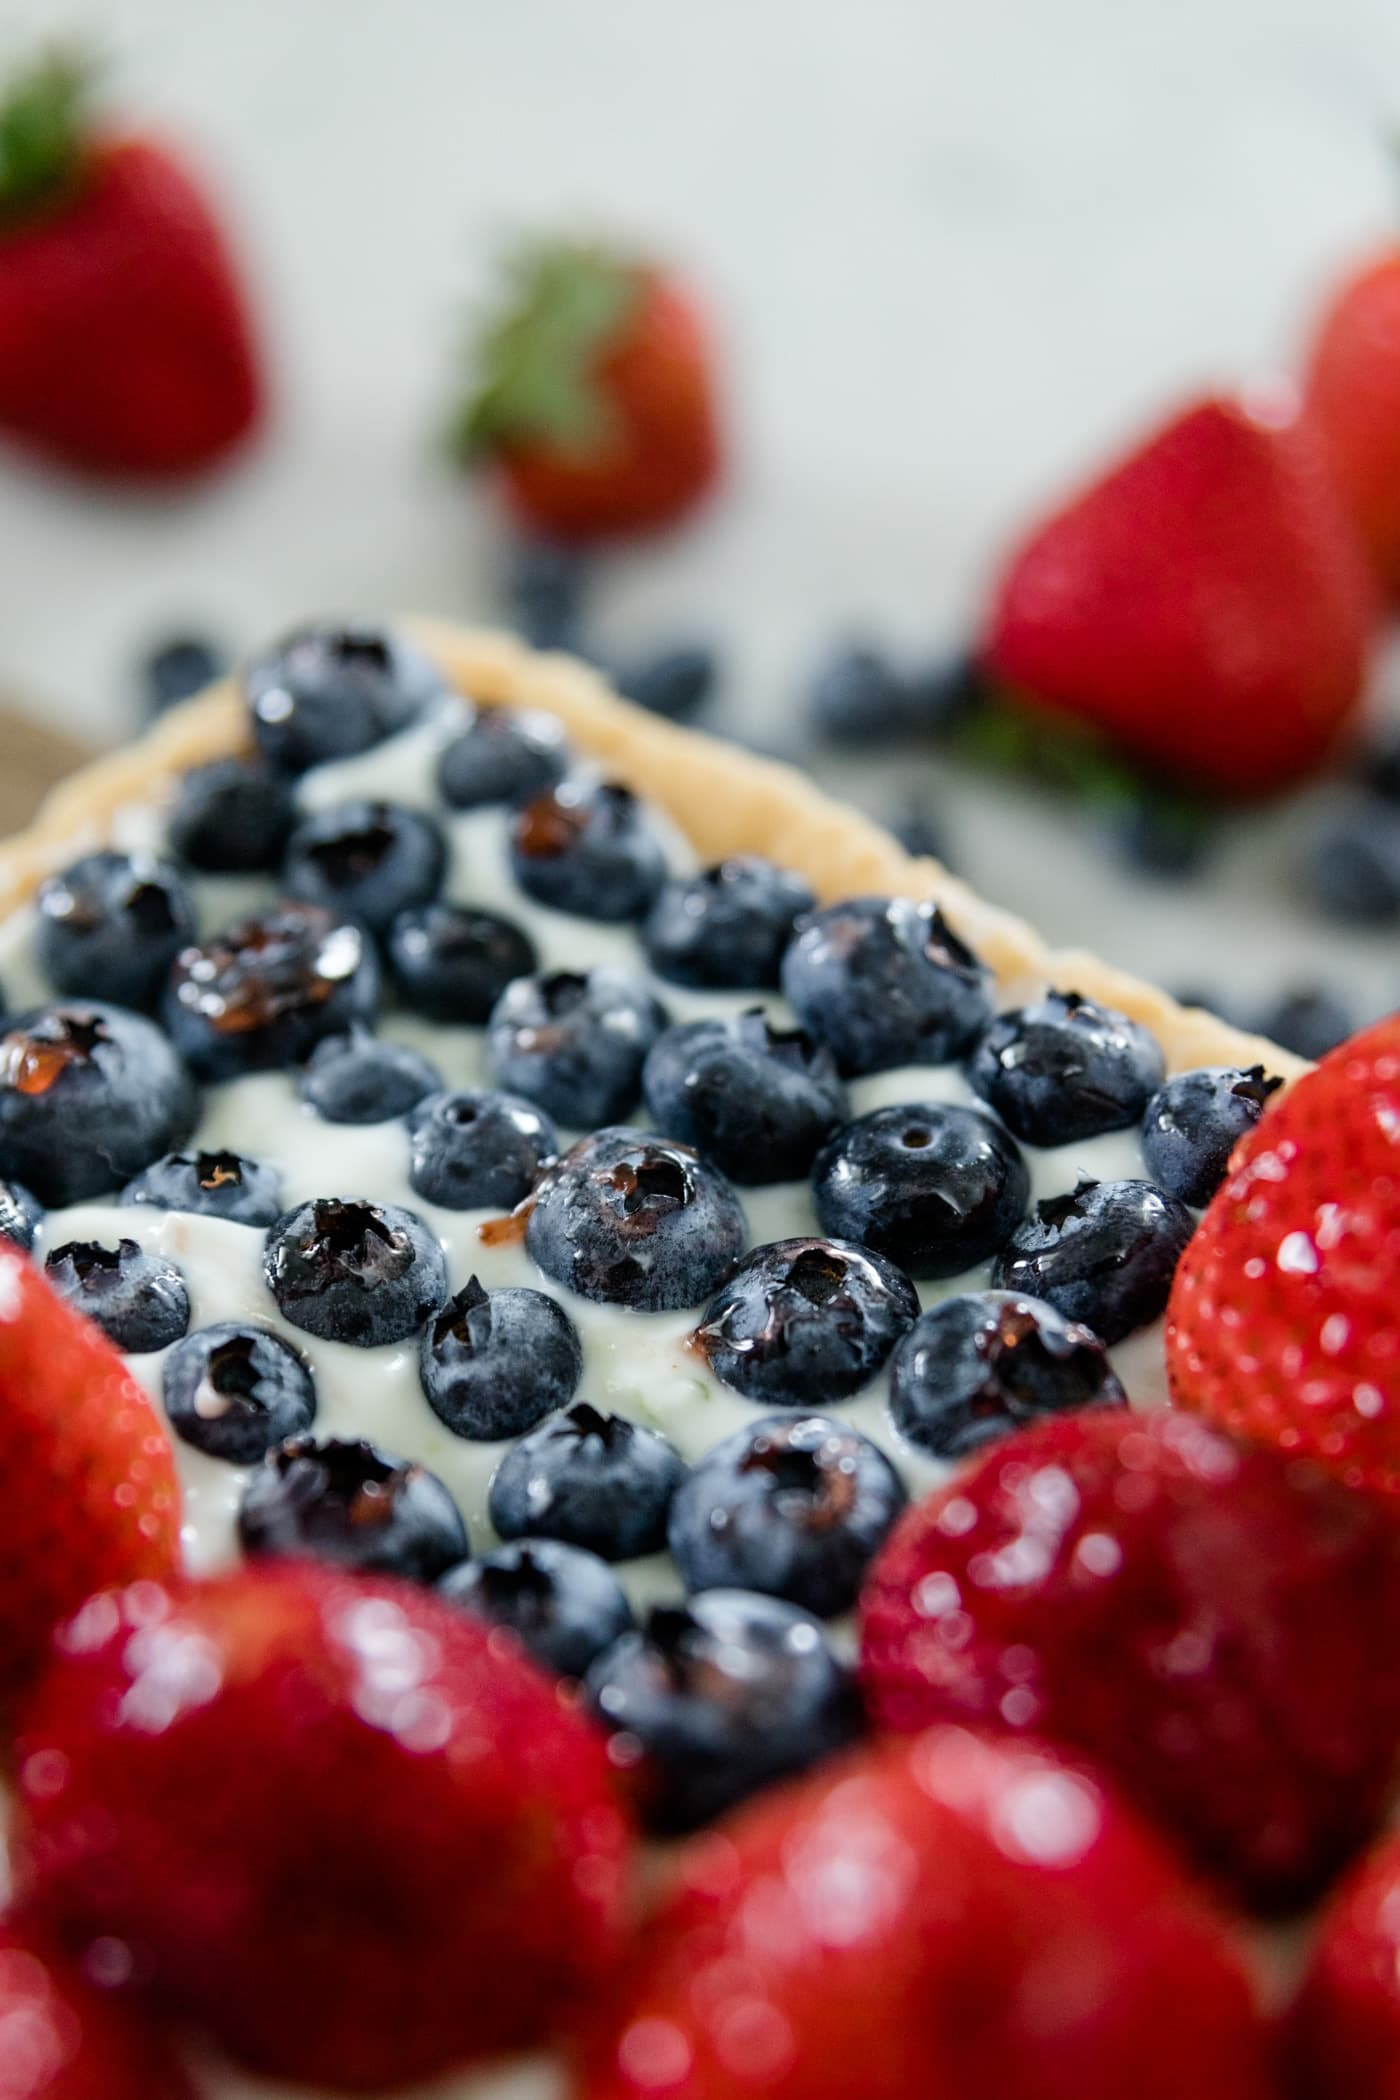 Strawberries and blueberries on a cookie tart with yogurt filling with extra strawberries and blueberries in background on a marble surface